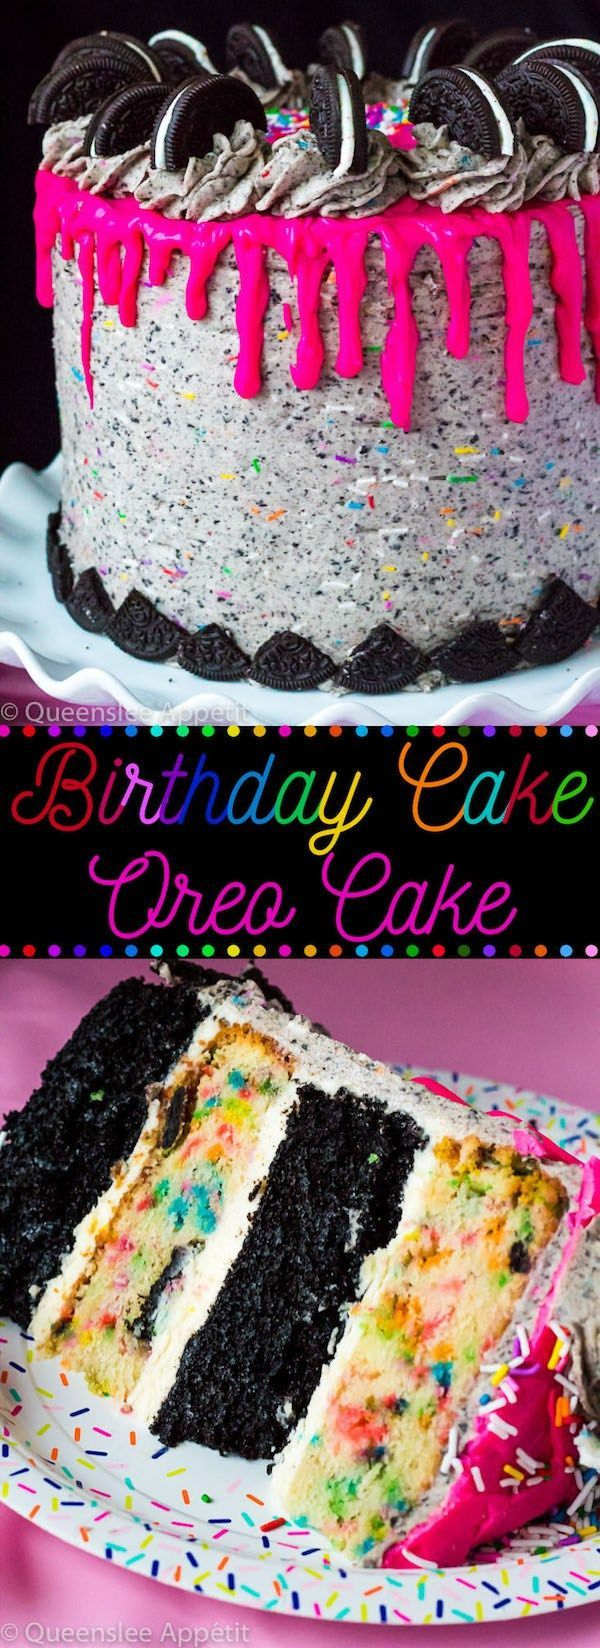 Birthday Cake Oreo Cake #celebrationcakes